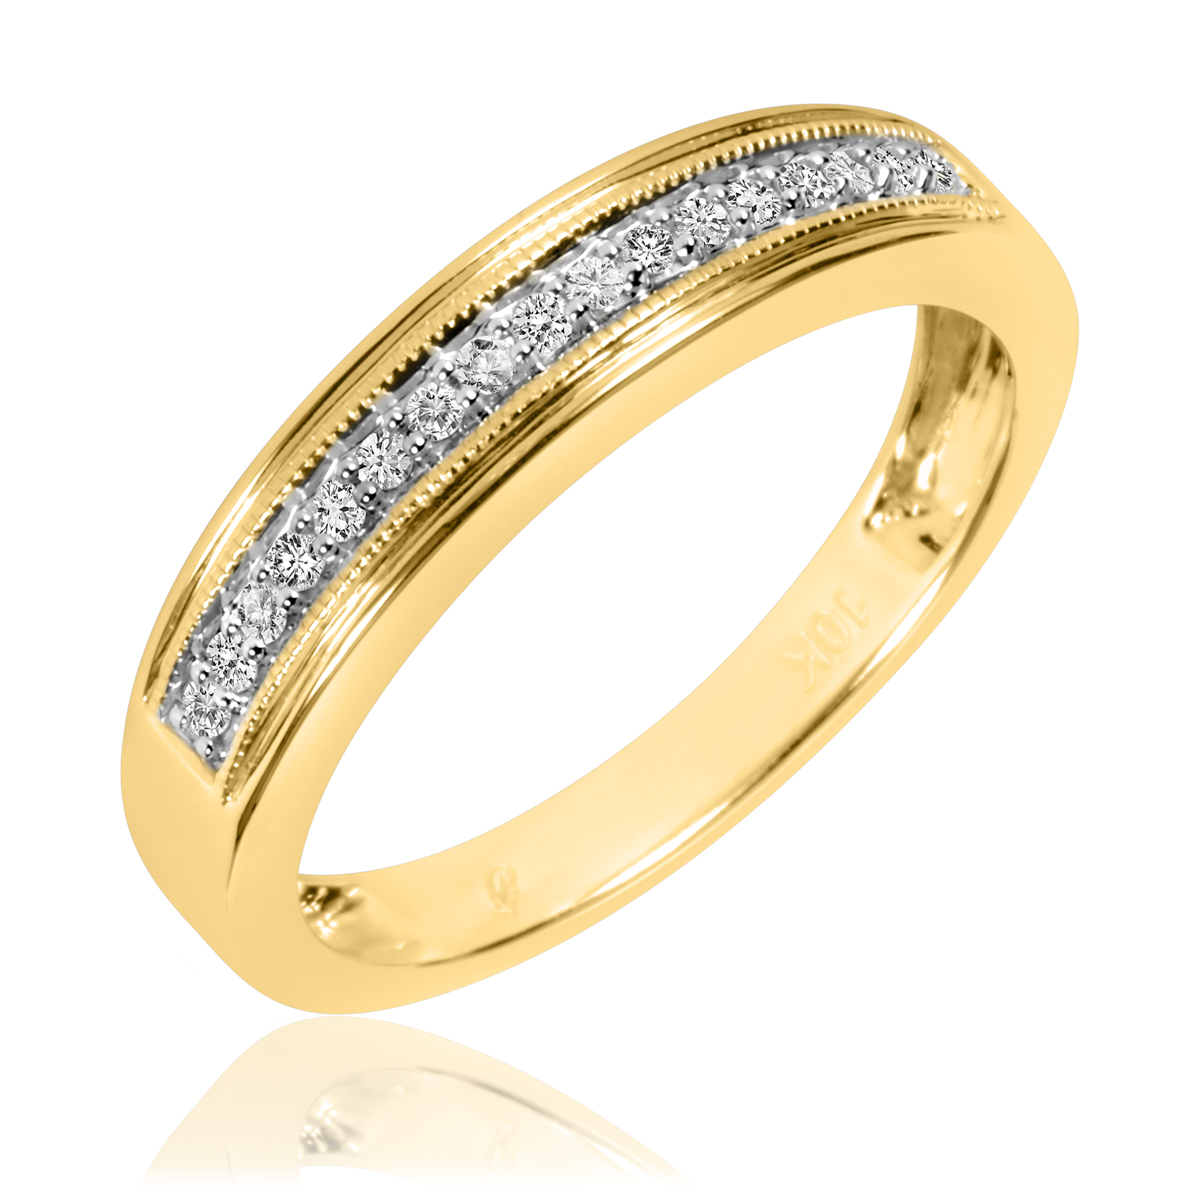 1/6 Carat T.W. Round Cut Diamond Men's Wedding Band 10K Yellow Gold- Size 8